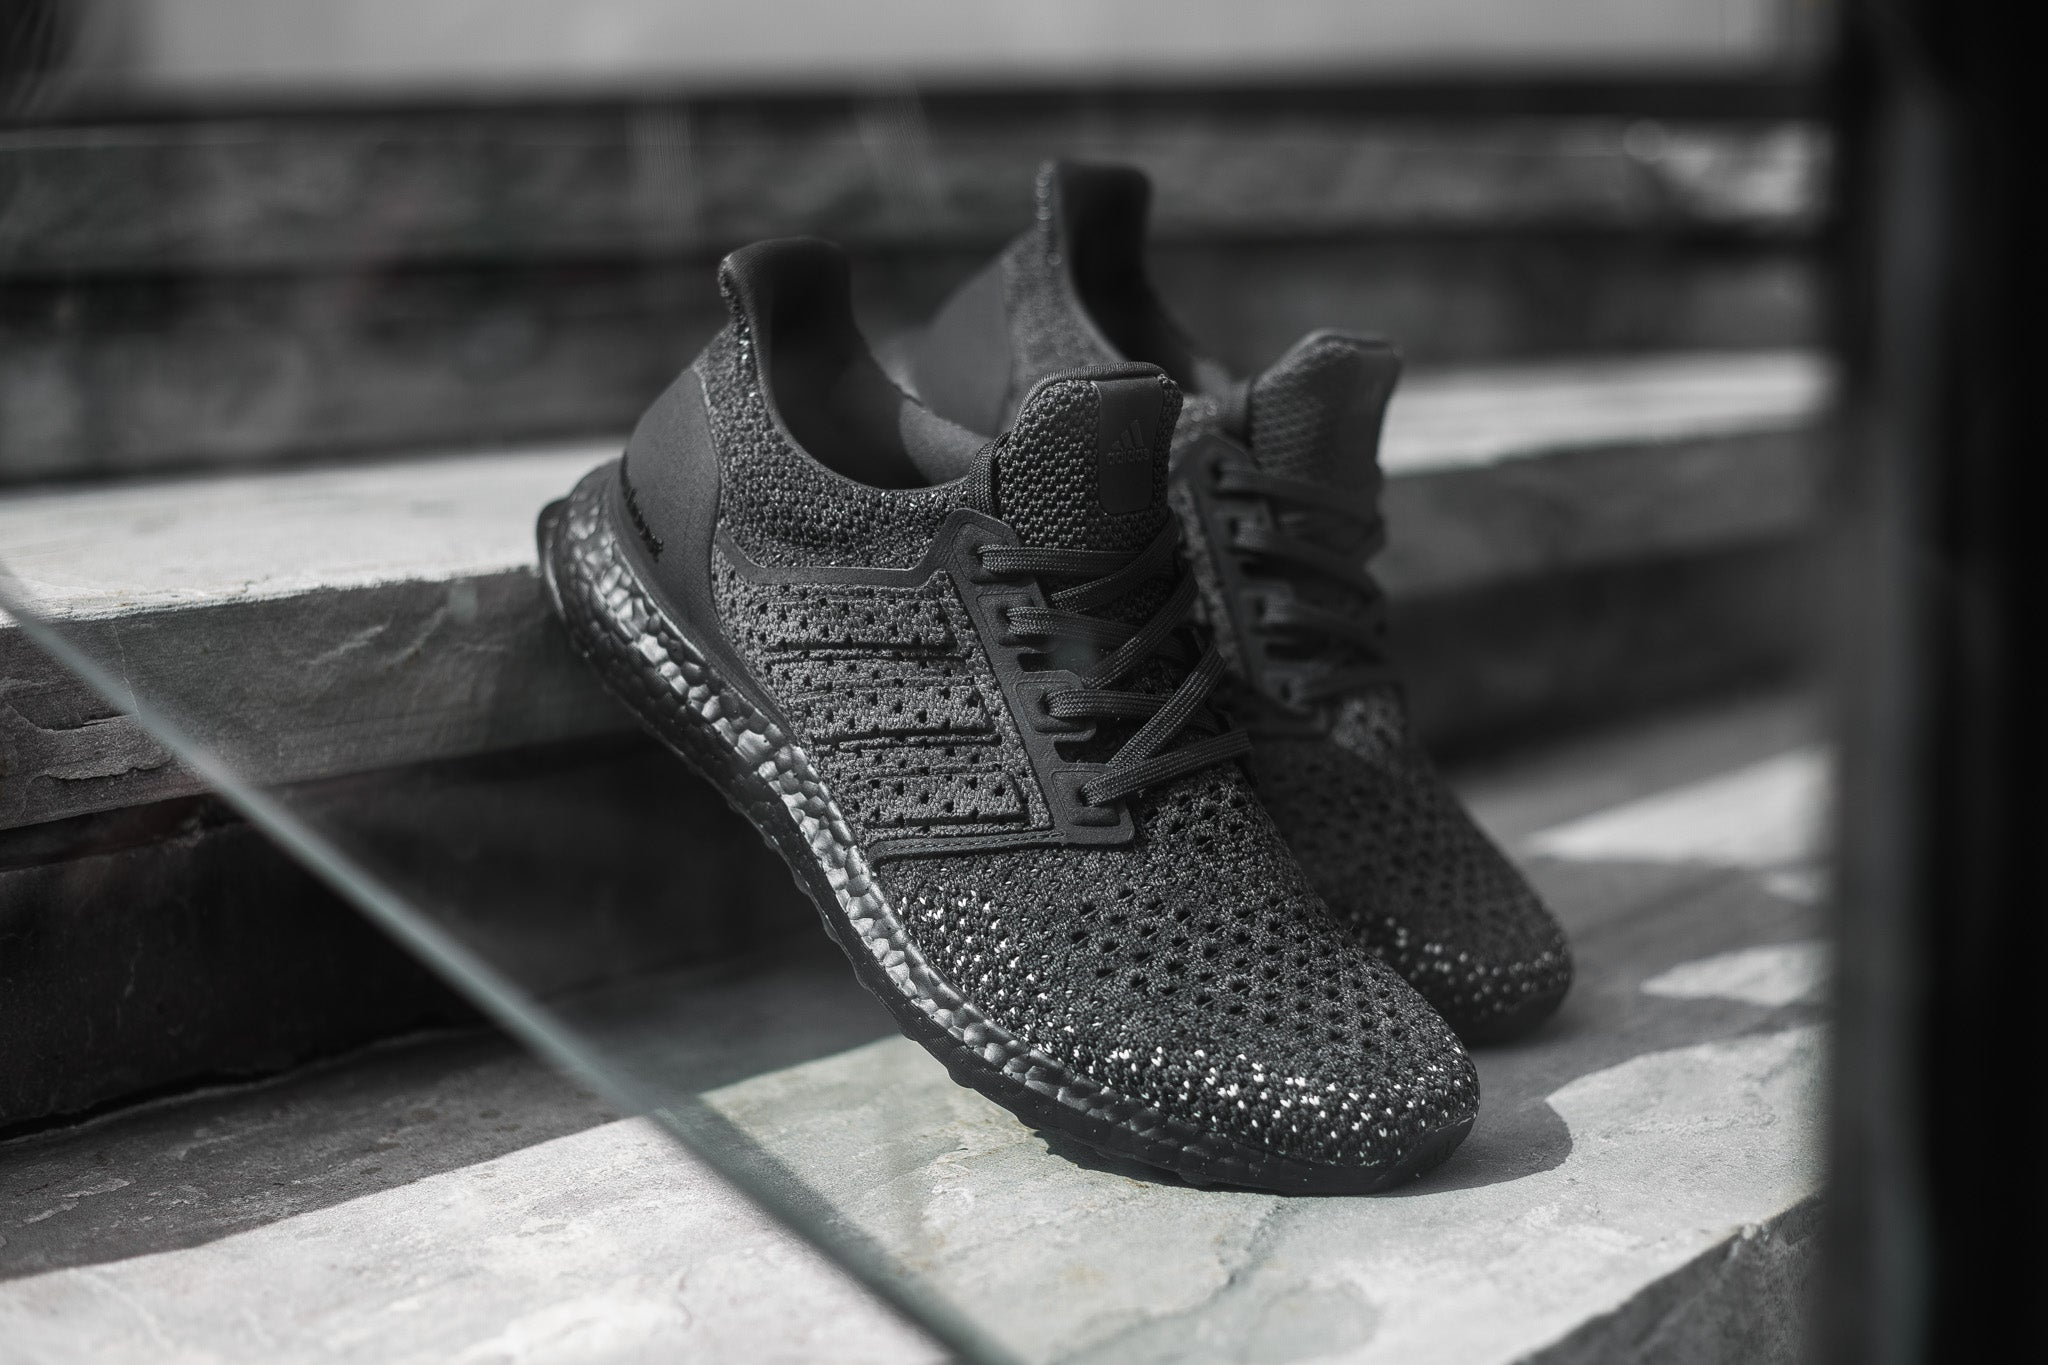 2890abbca3f56 adidas  Ultraboost Clima LTD goes carbon black with a full Primeknit upper  and cage component. The upper is an open knit Primeknit material with ...